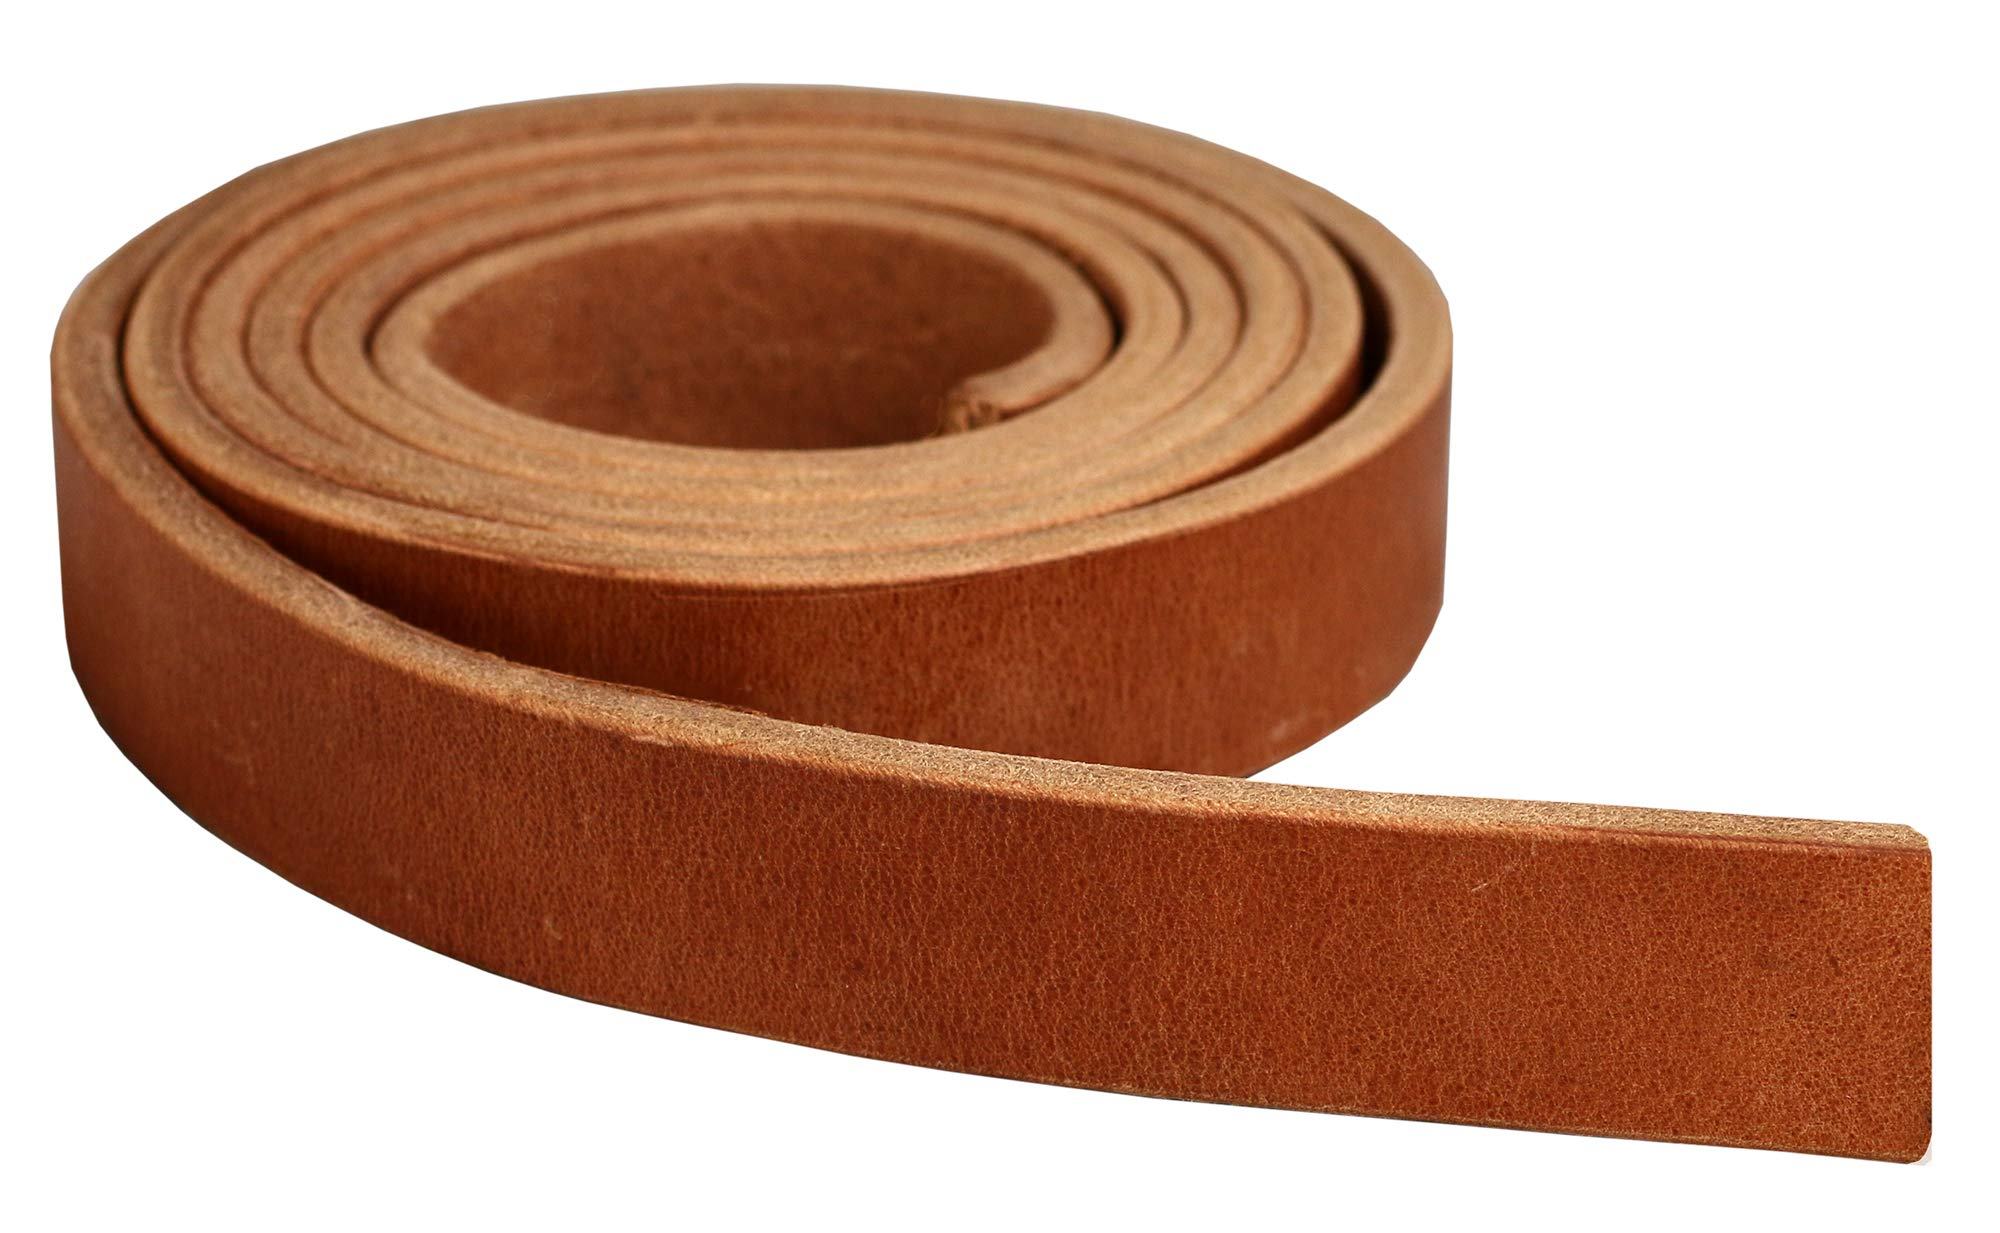 Premium Hermann Oak Harness Leather Blank Strap, 100% Leather Strip, 13 Ounce Weight [13/64'' or 5.2 MM Thickness] Fully Finished & Leveled, Natural Russet Color, Great for Tack Repair - 1.5''x 84''